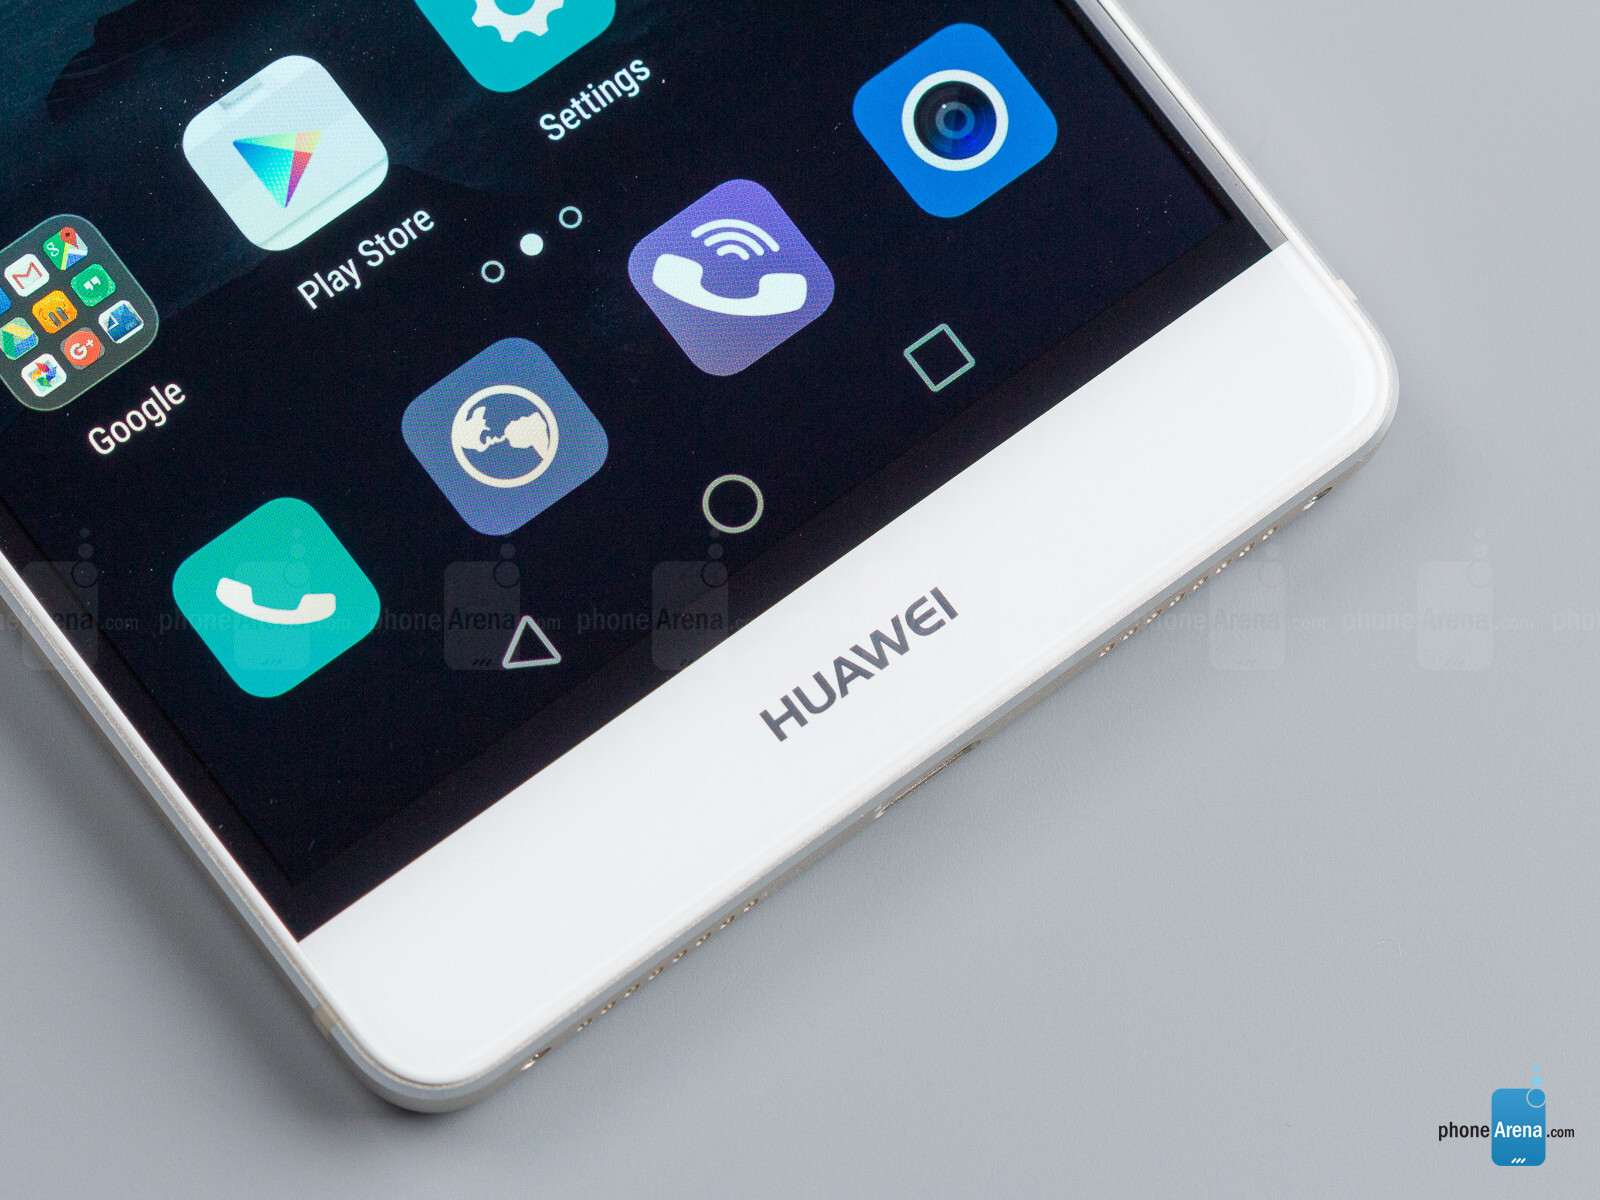 Huawei reveals which of its models will be updated to Android 7.0; two high-end phones are left out in Android Huawei Updates